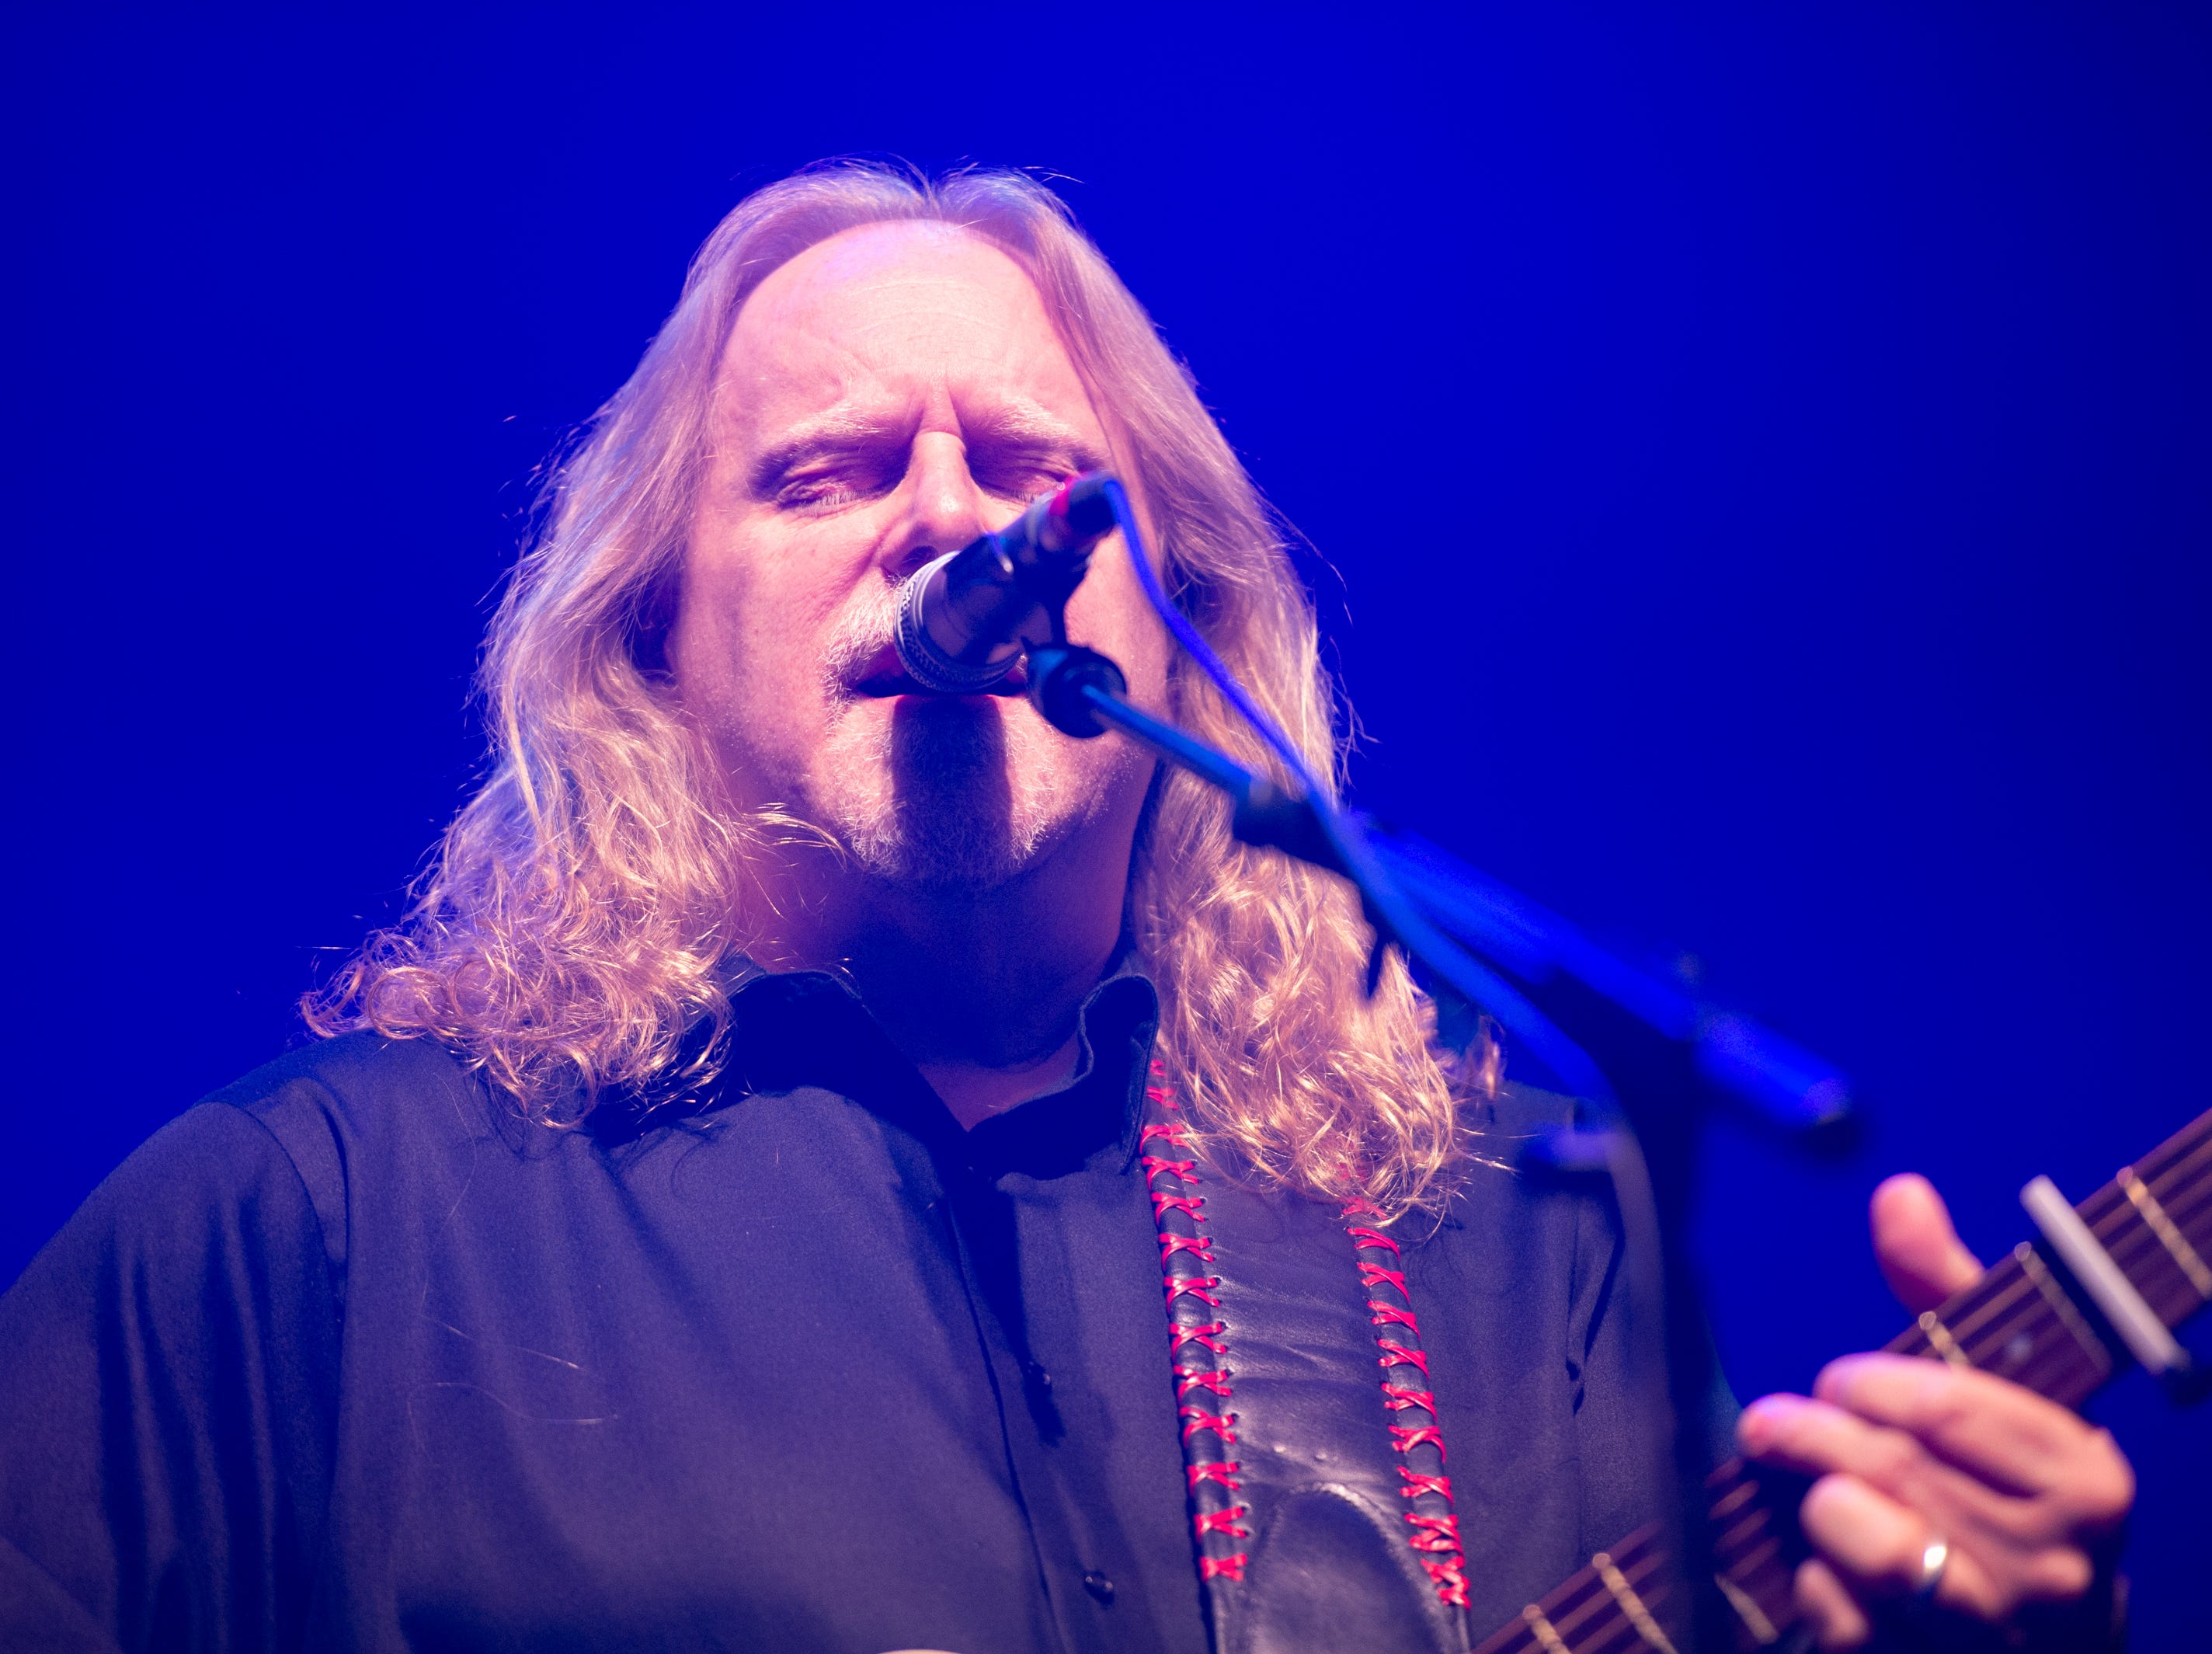 Warren Haynes performs on the first night of the 30th annual Christmas Jam at the U.S Cellular Center in Asheville, Dec. 7, 2018.